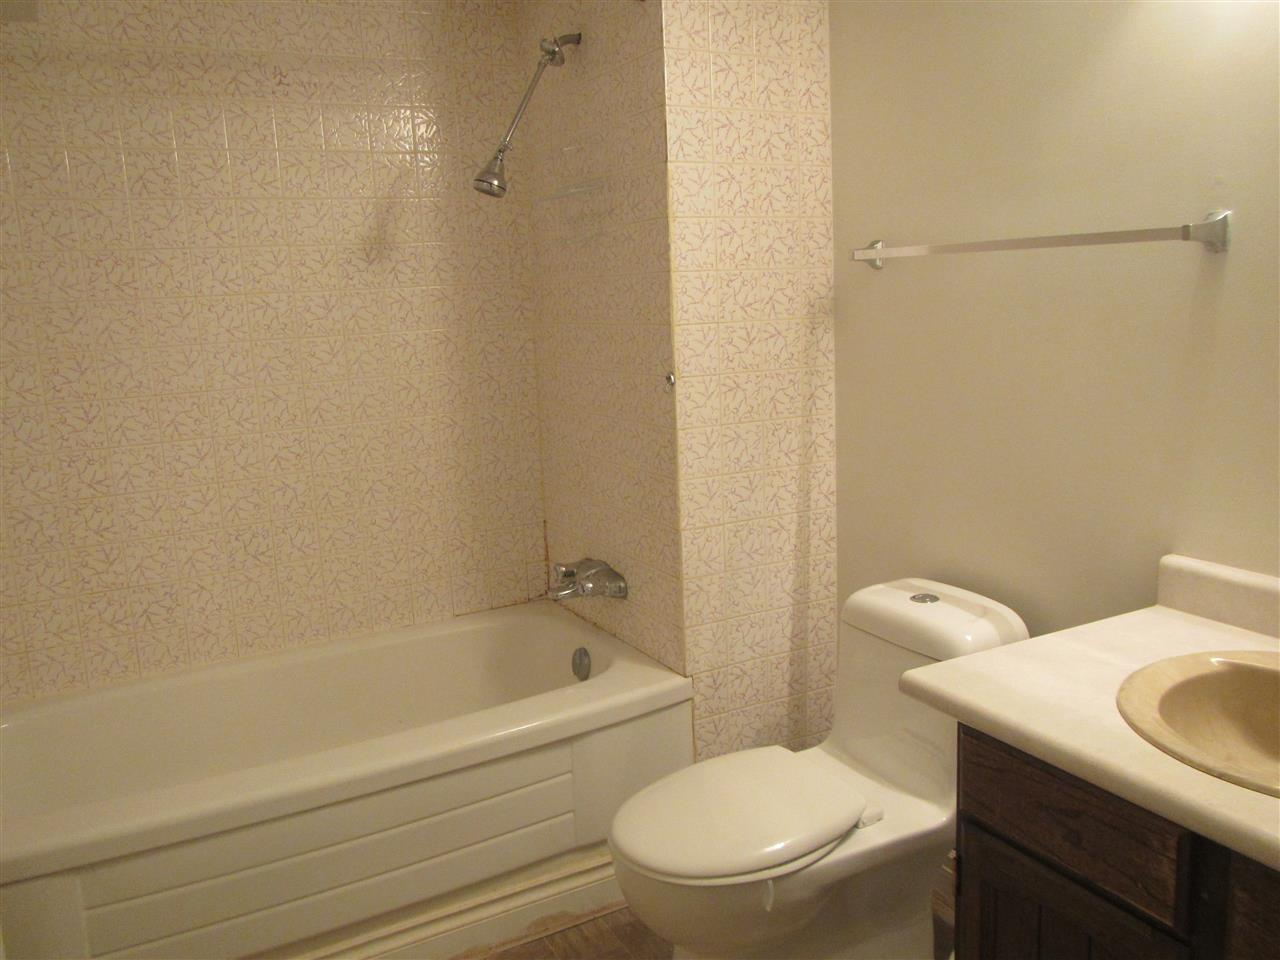 This is the 2nd full bath which is part of the separate lower level living area.